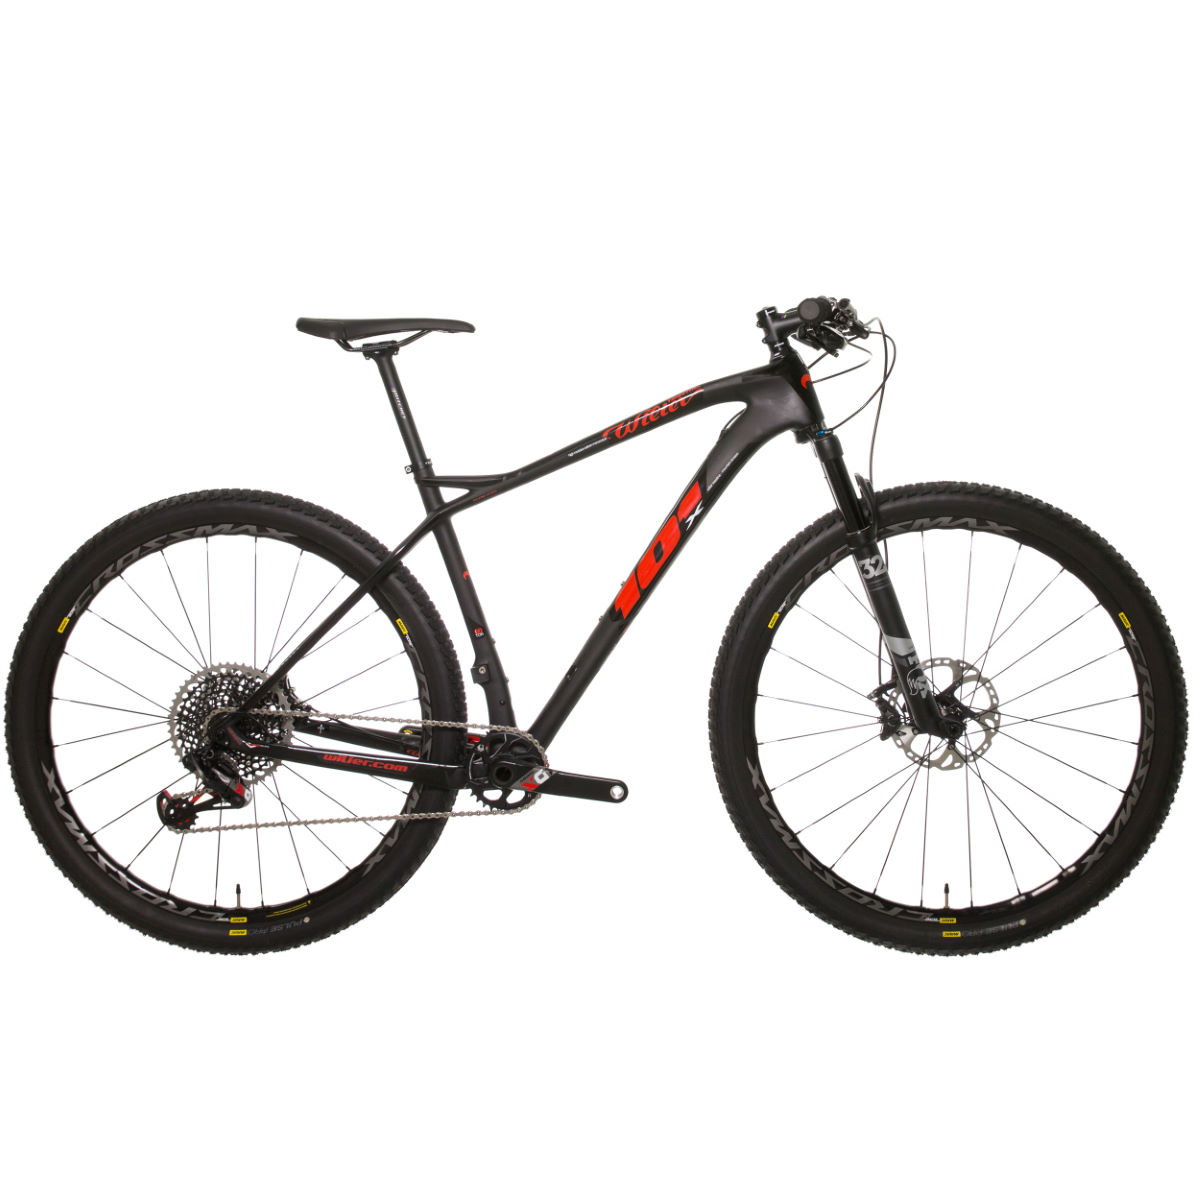 VTT Wilier 101X (Eagle X01, 2018) - XL Stock Bike Yellow/Red